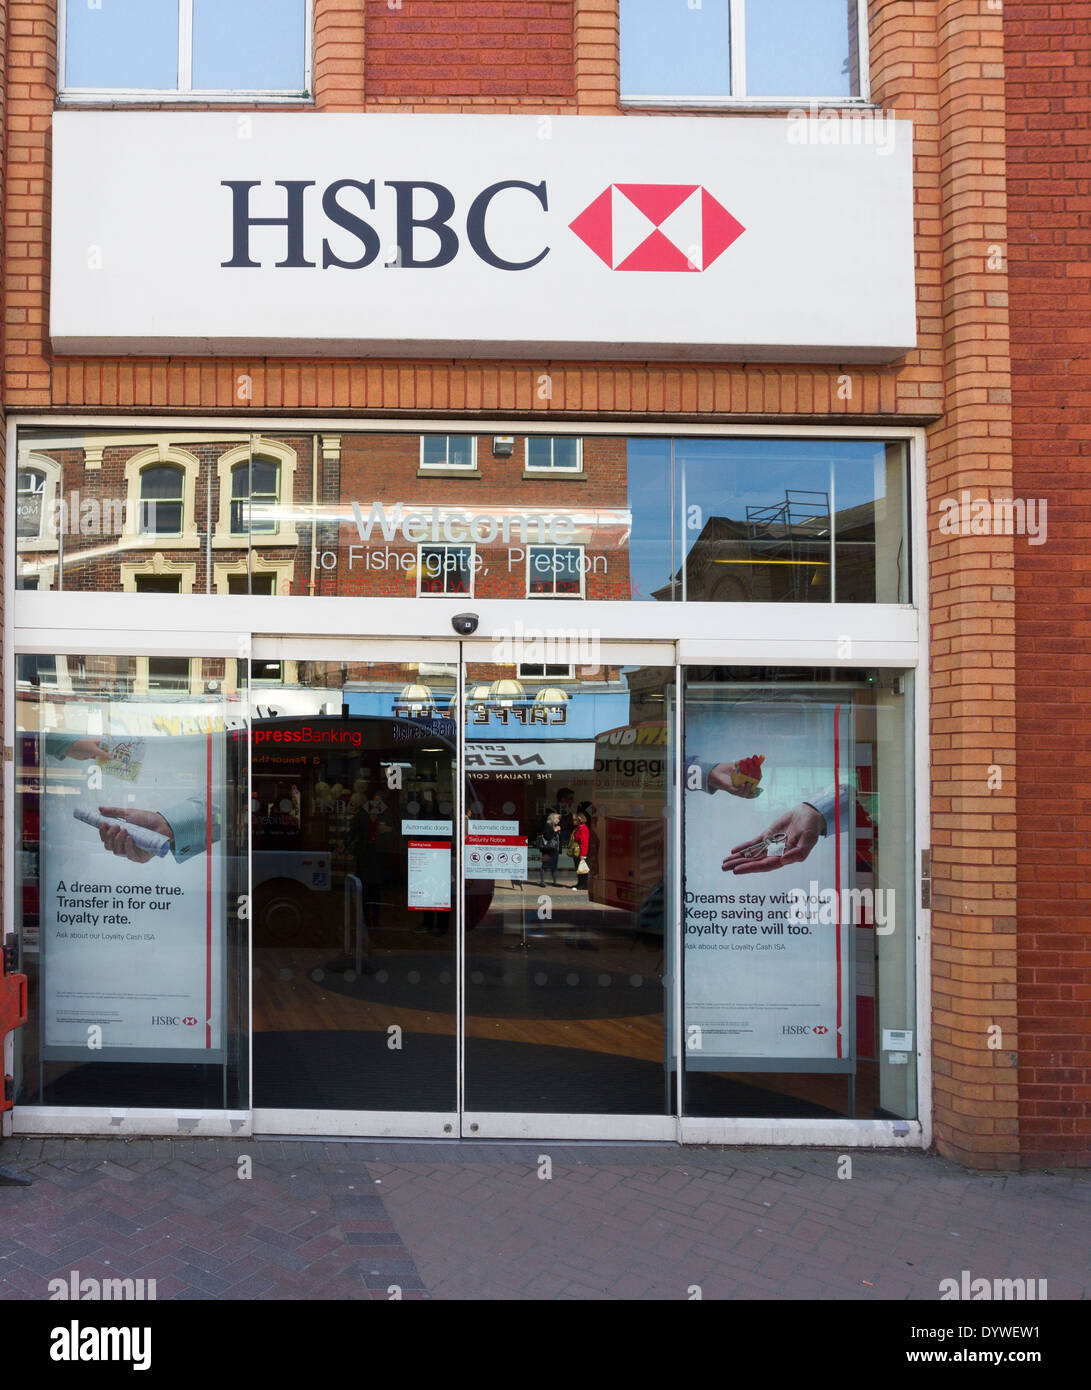 HSBC bank branch Preston Stock Photo: 68787293 - Alamy